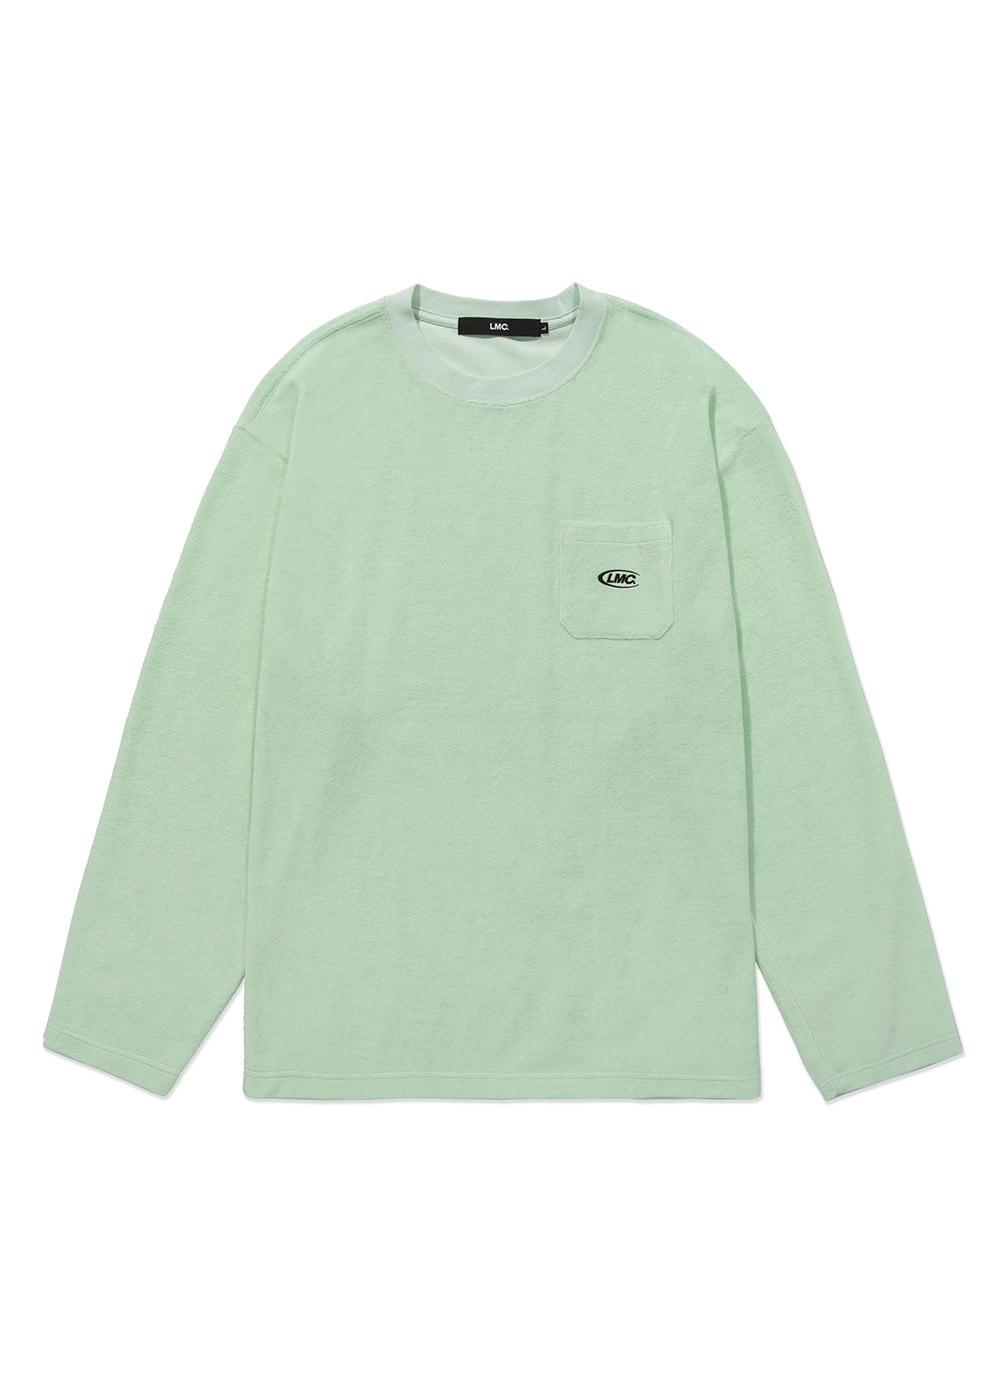 LMC TERRY POCKET LONG SLV TEE mint